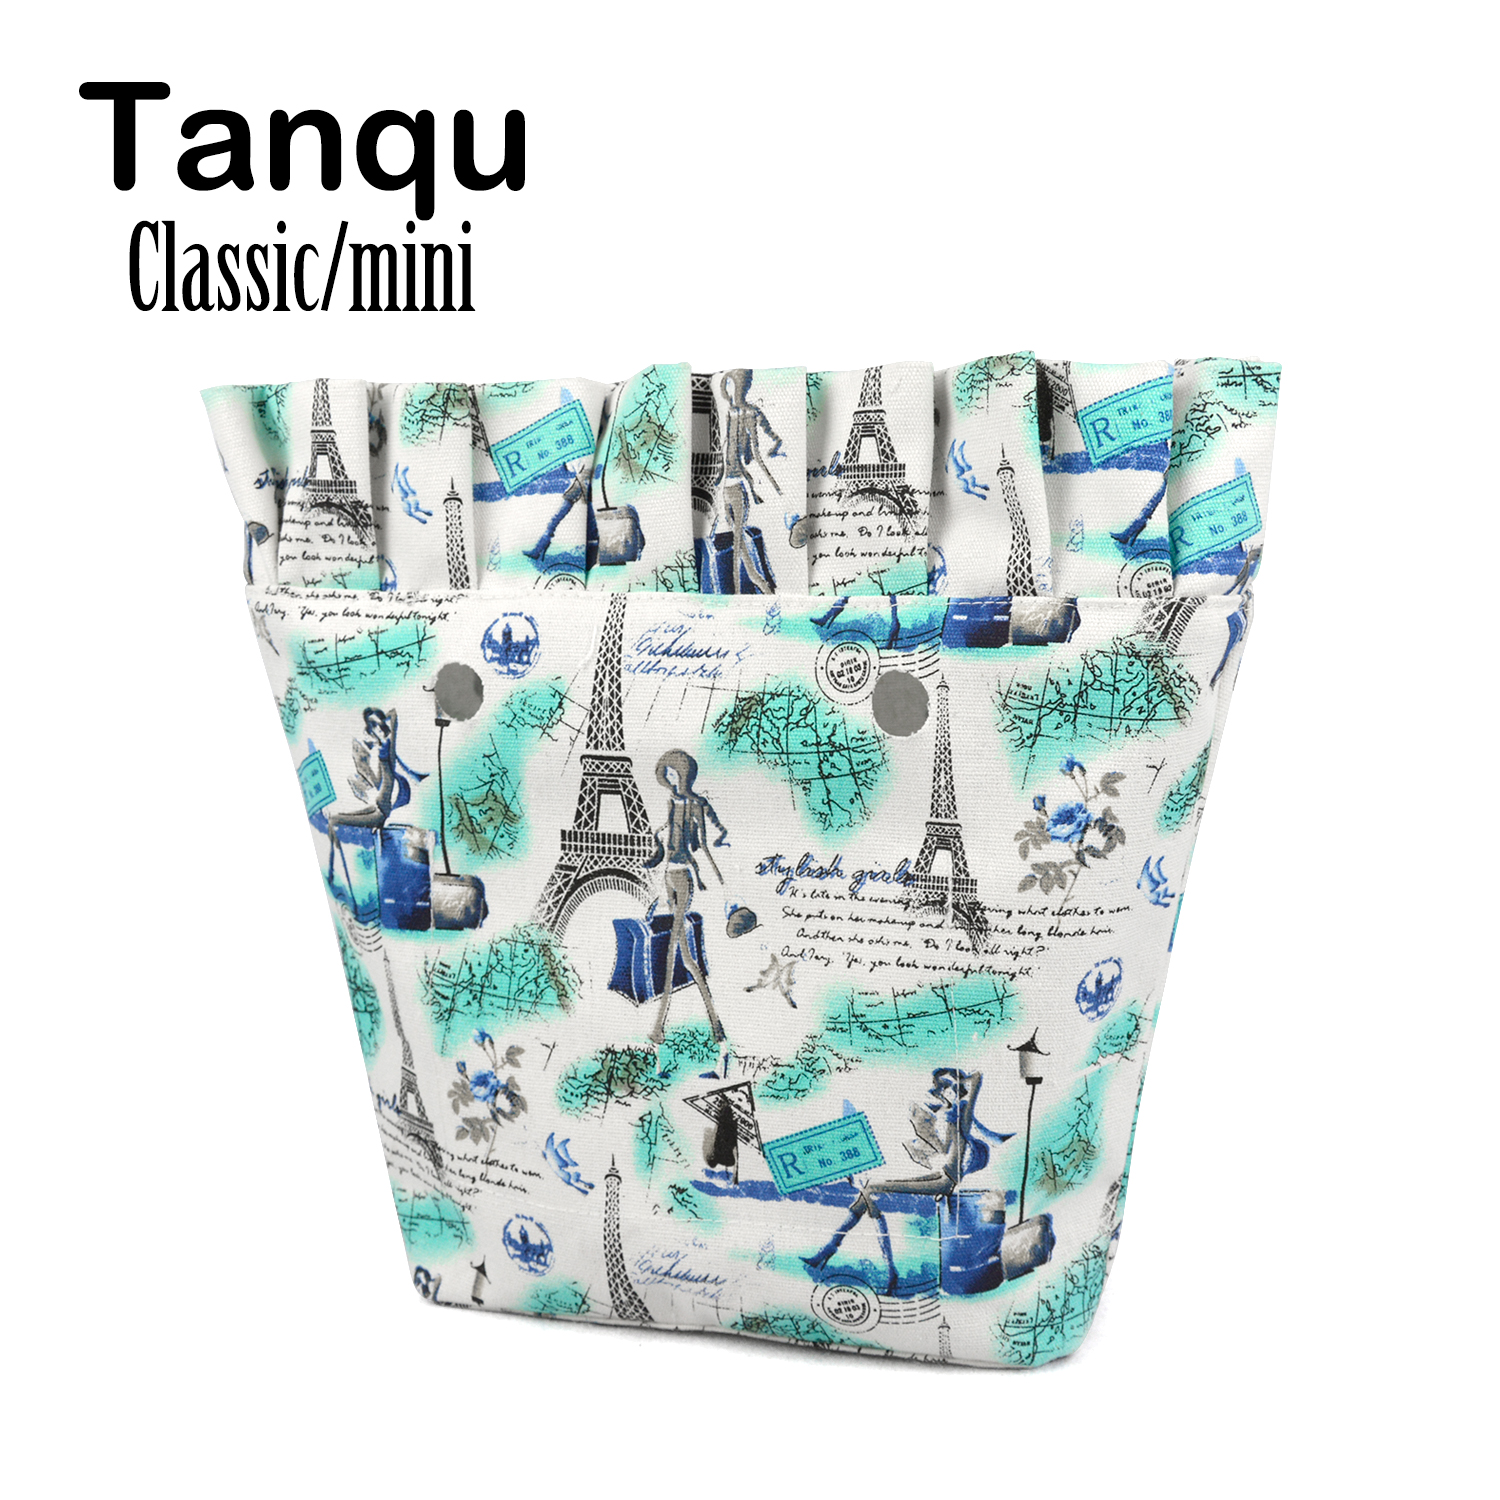 TANQU New Frill Pleat Ruffle Classic Mini Colorful Zip-up Inner Lining Insert for Big Mini Obag Canvas Inner Pocket for O Bag crescent bend touch frequency vibration bar female masturbation tongue oral sex adult sex toys vibrators